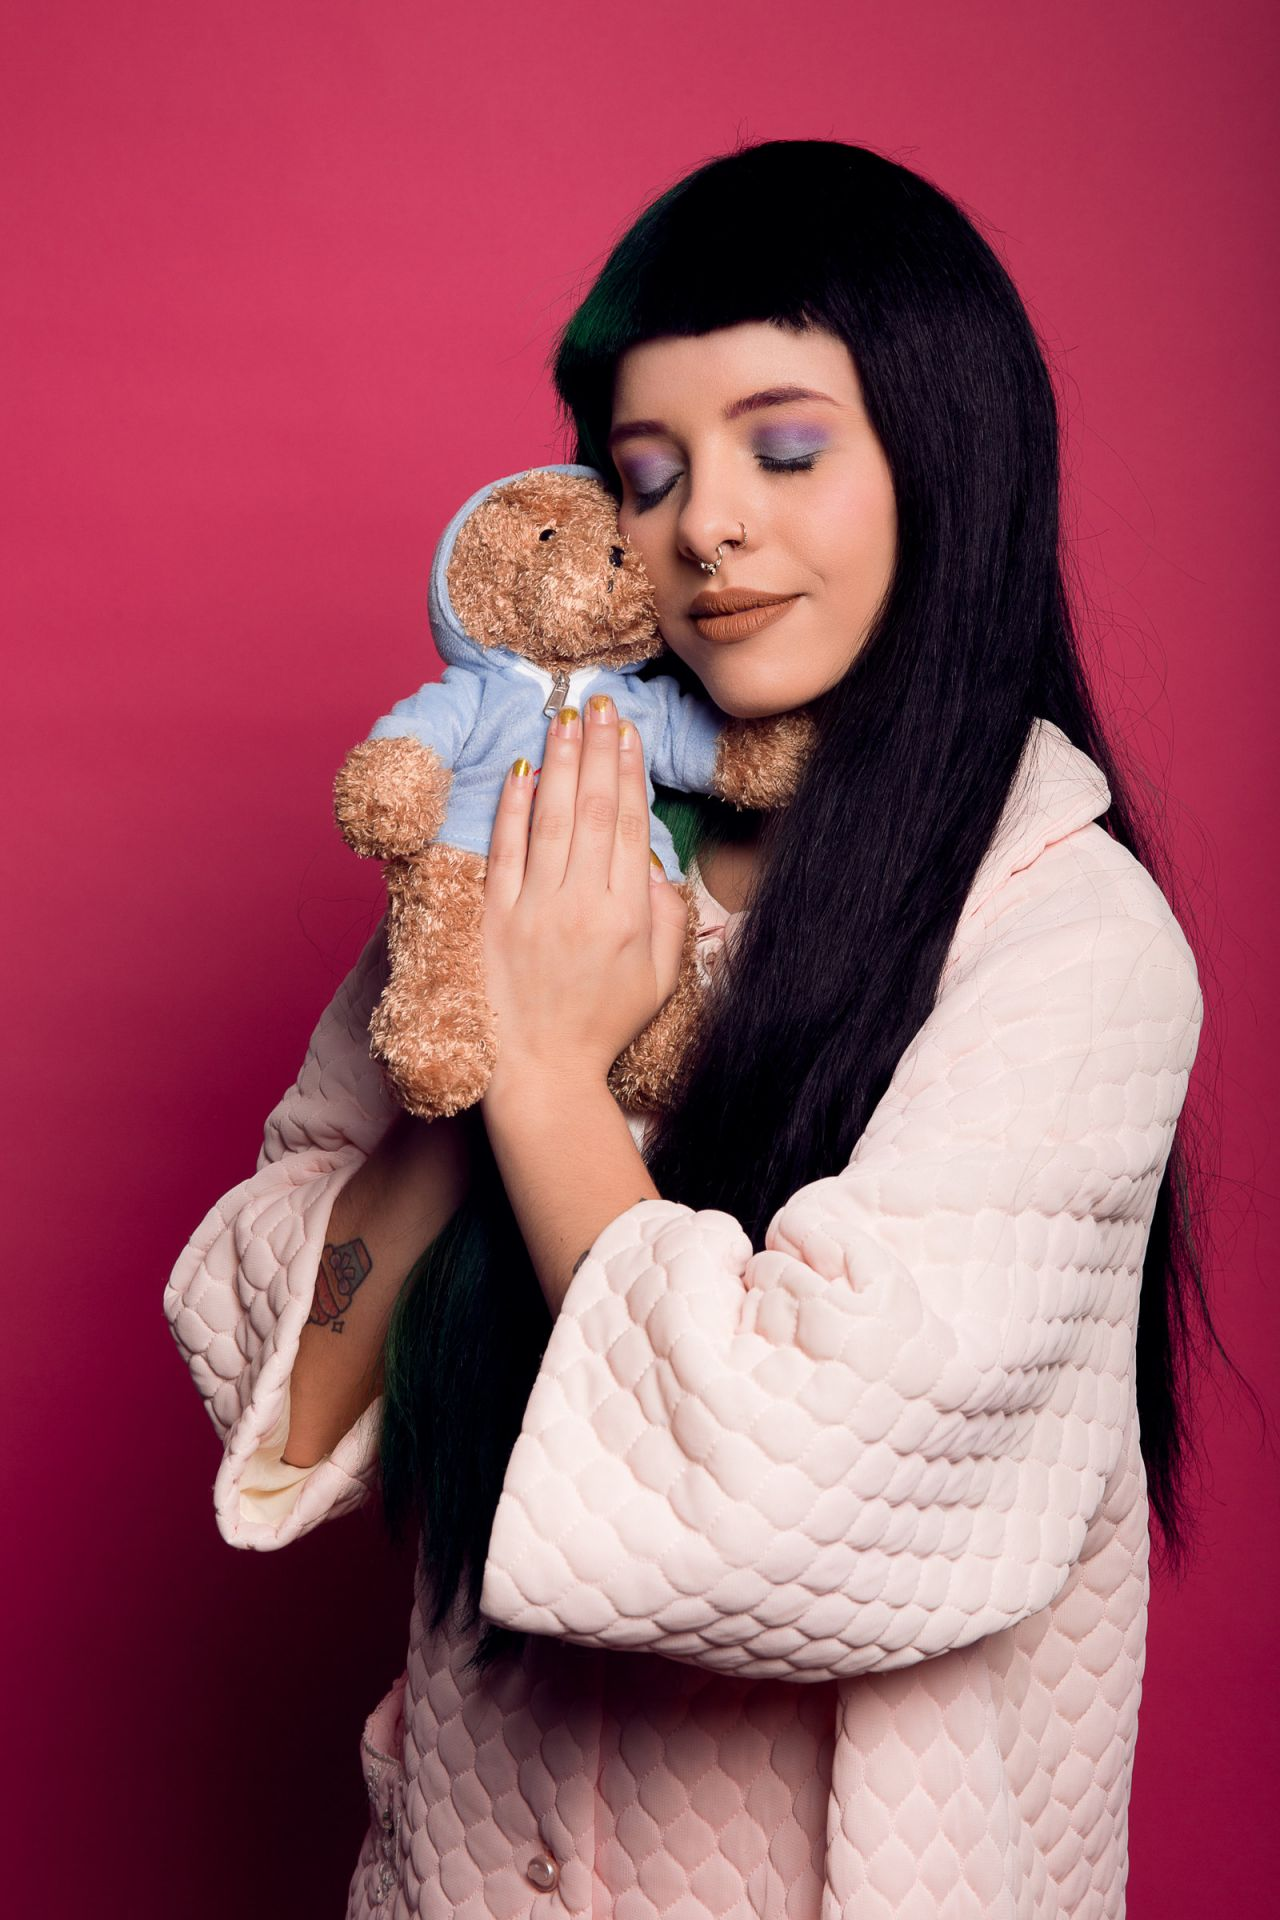 Melanie Martinez - Photoshoot 2017